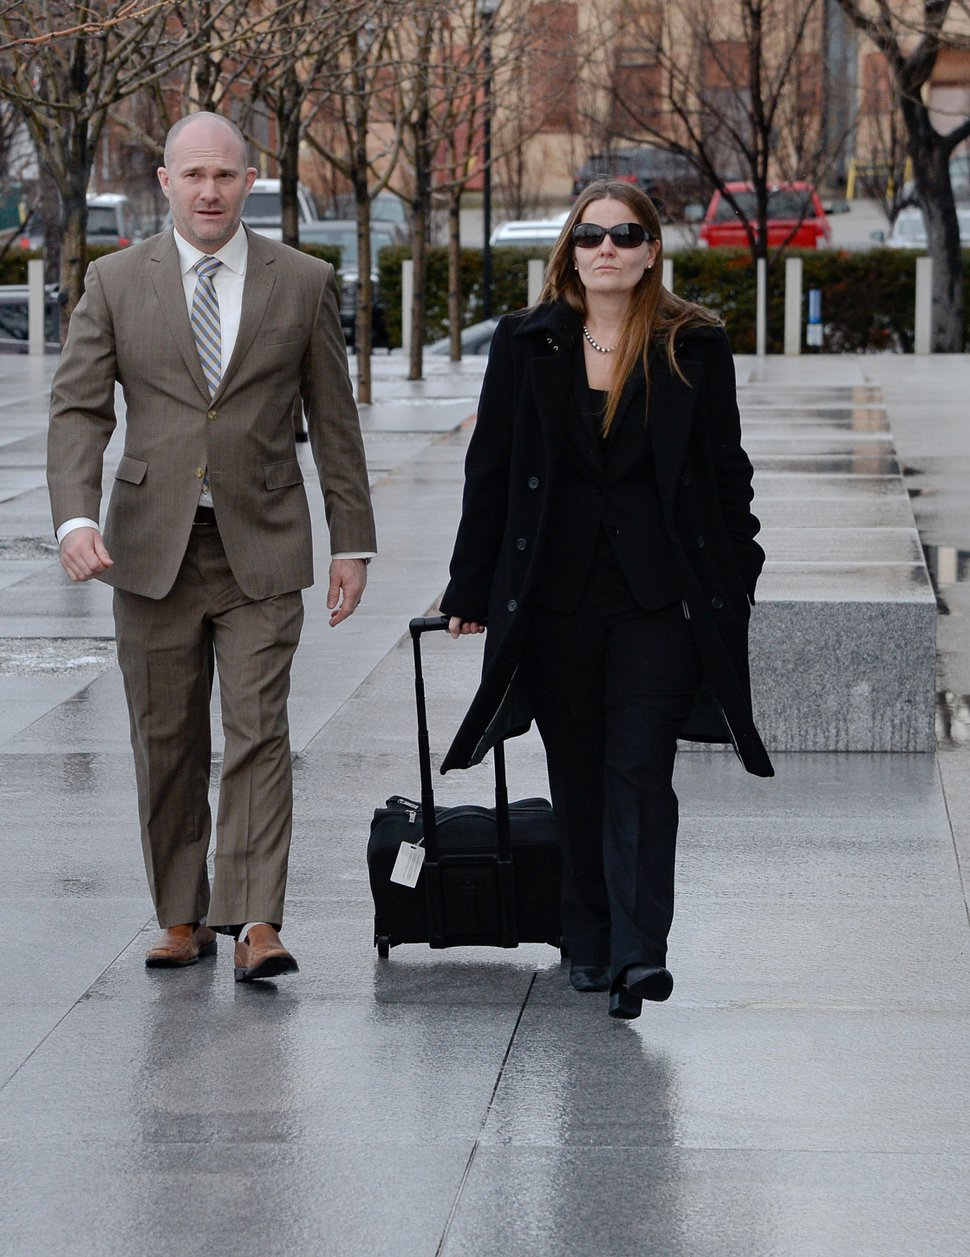 (Francisco Kjolseth | The Salt Lake Tribune) Tyler Hatcher, assistant special agent in charge of IRS Criminal Investigations and Leslie Goemaat, special assistant U.S. attorney, arrive for the final day of jury selection at the federal courthouse in Salt Lake City, Wednesday, Jan. 29, 2020, in the trial of Lev Dermen, who is charged with 10 felonies related to fraud at Washakie Renewable Energy.